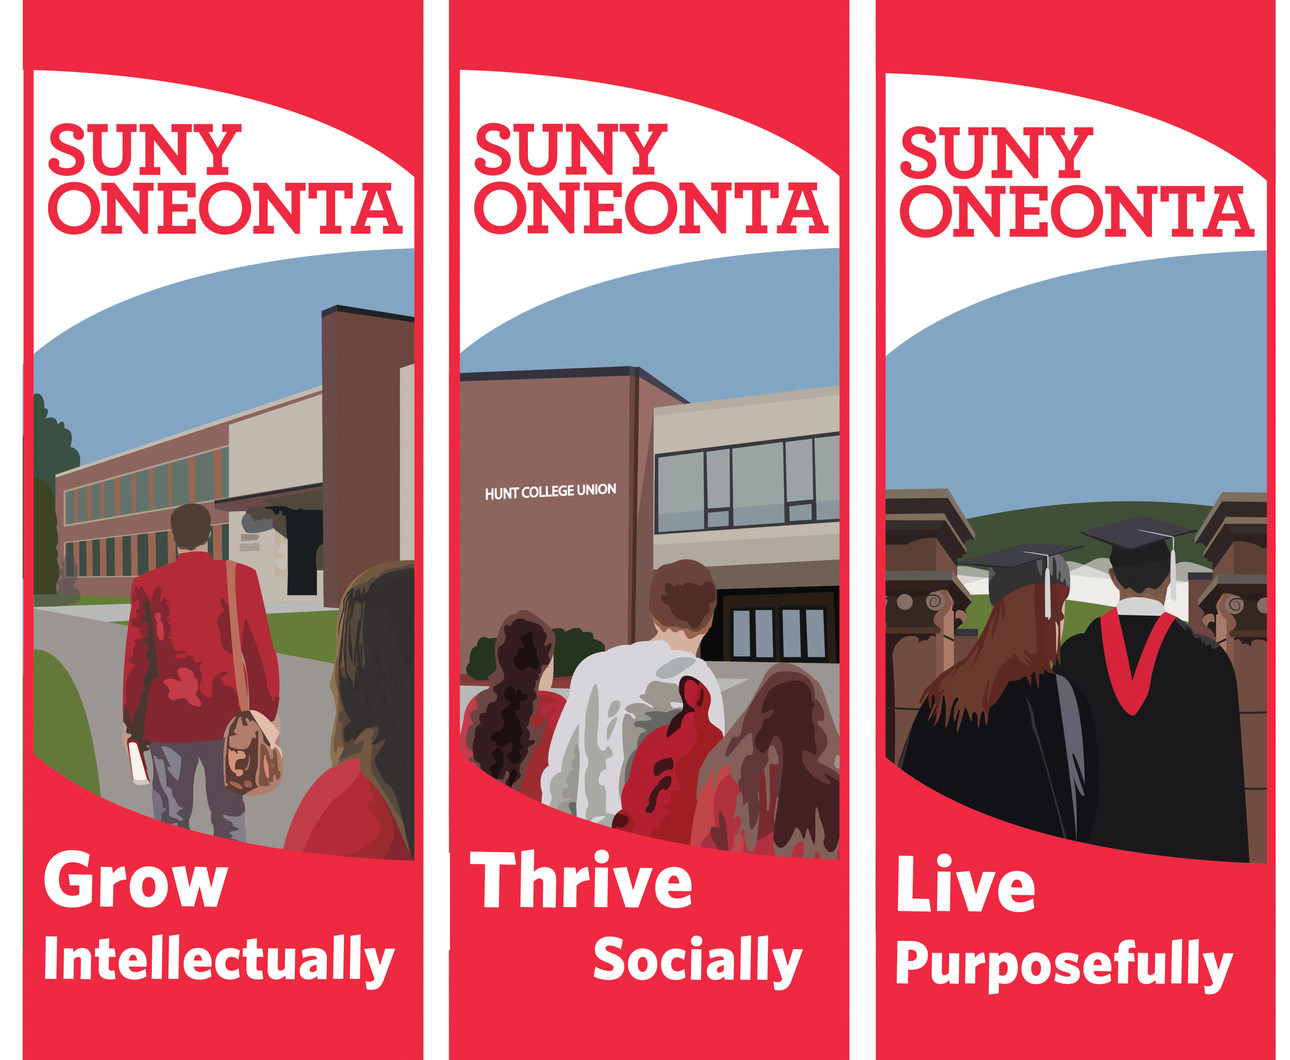 Oneonta Banners.jpg